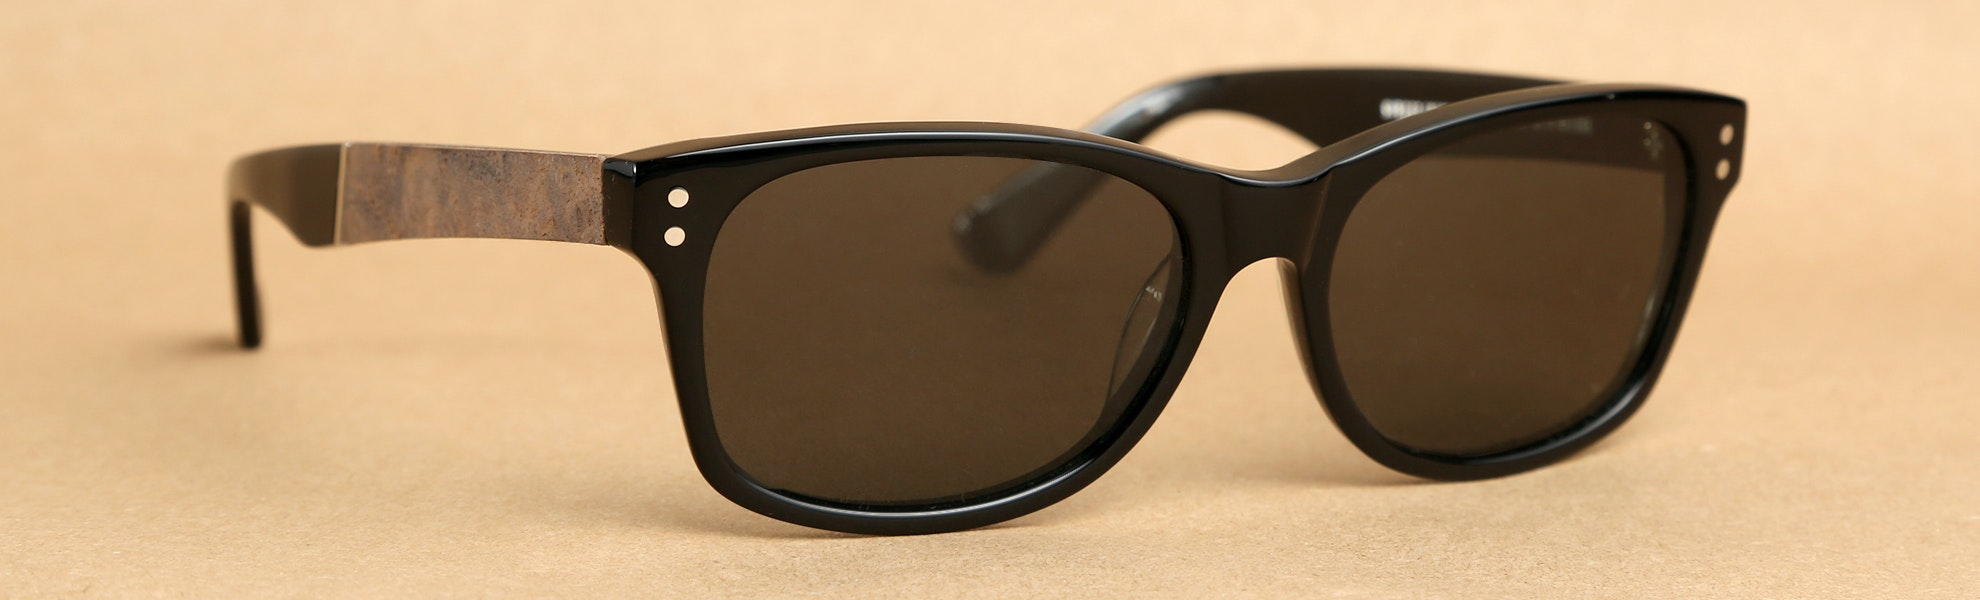 Shwood Cannon Sunglasses